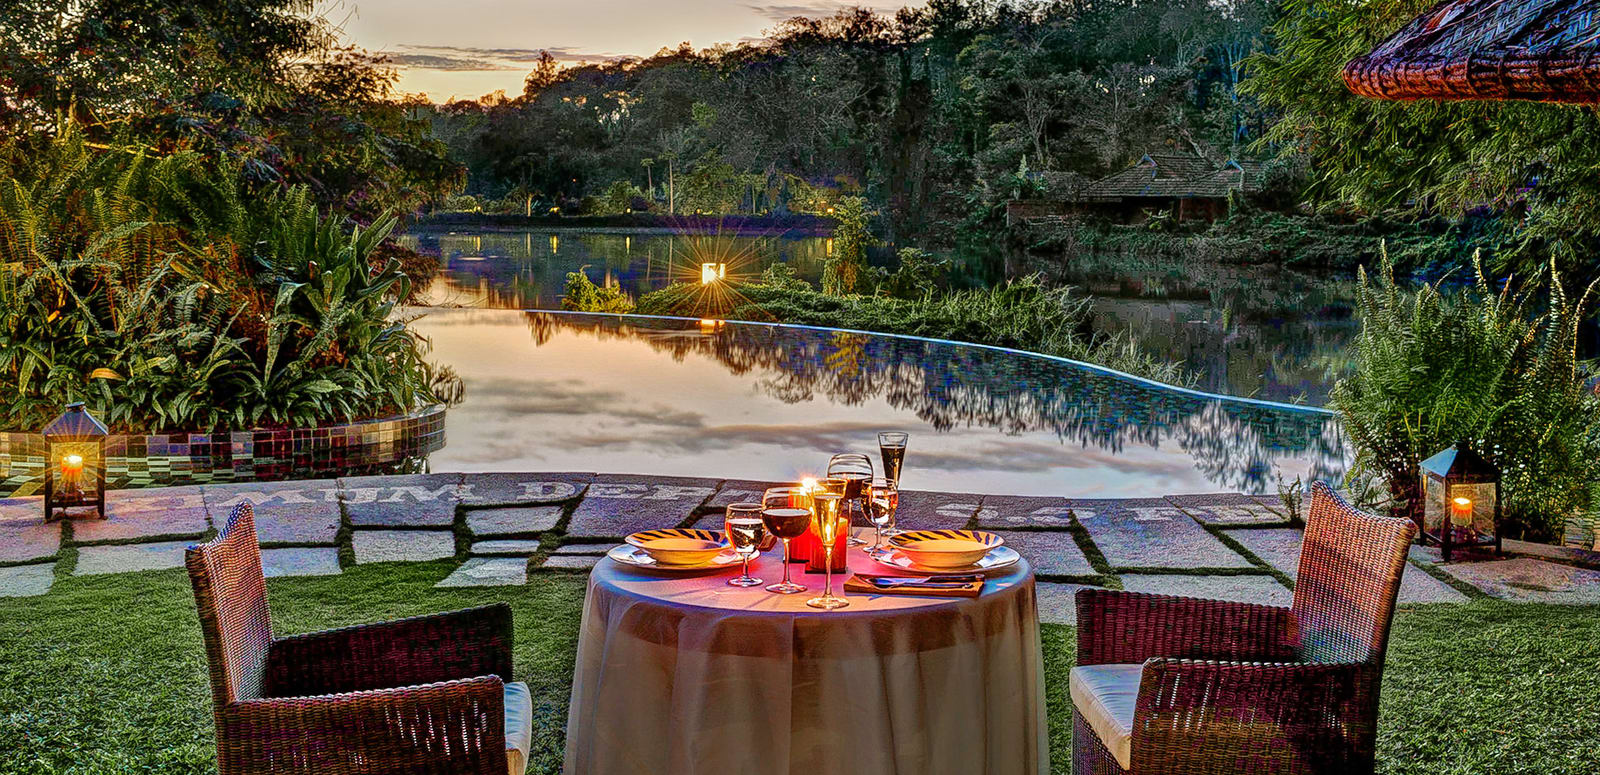 40 Best Coorg Honeymoon Packages